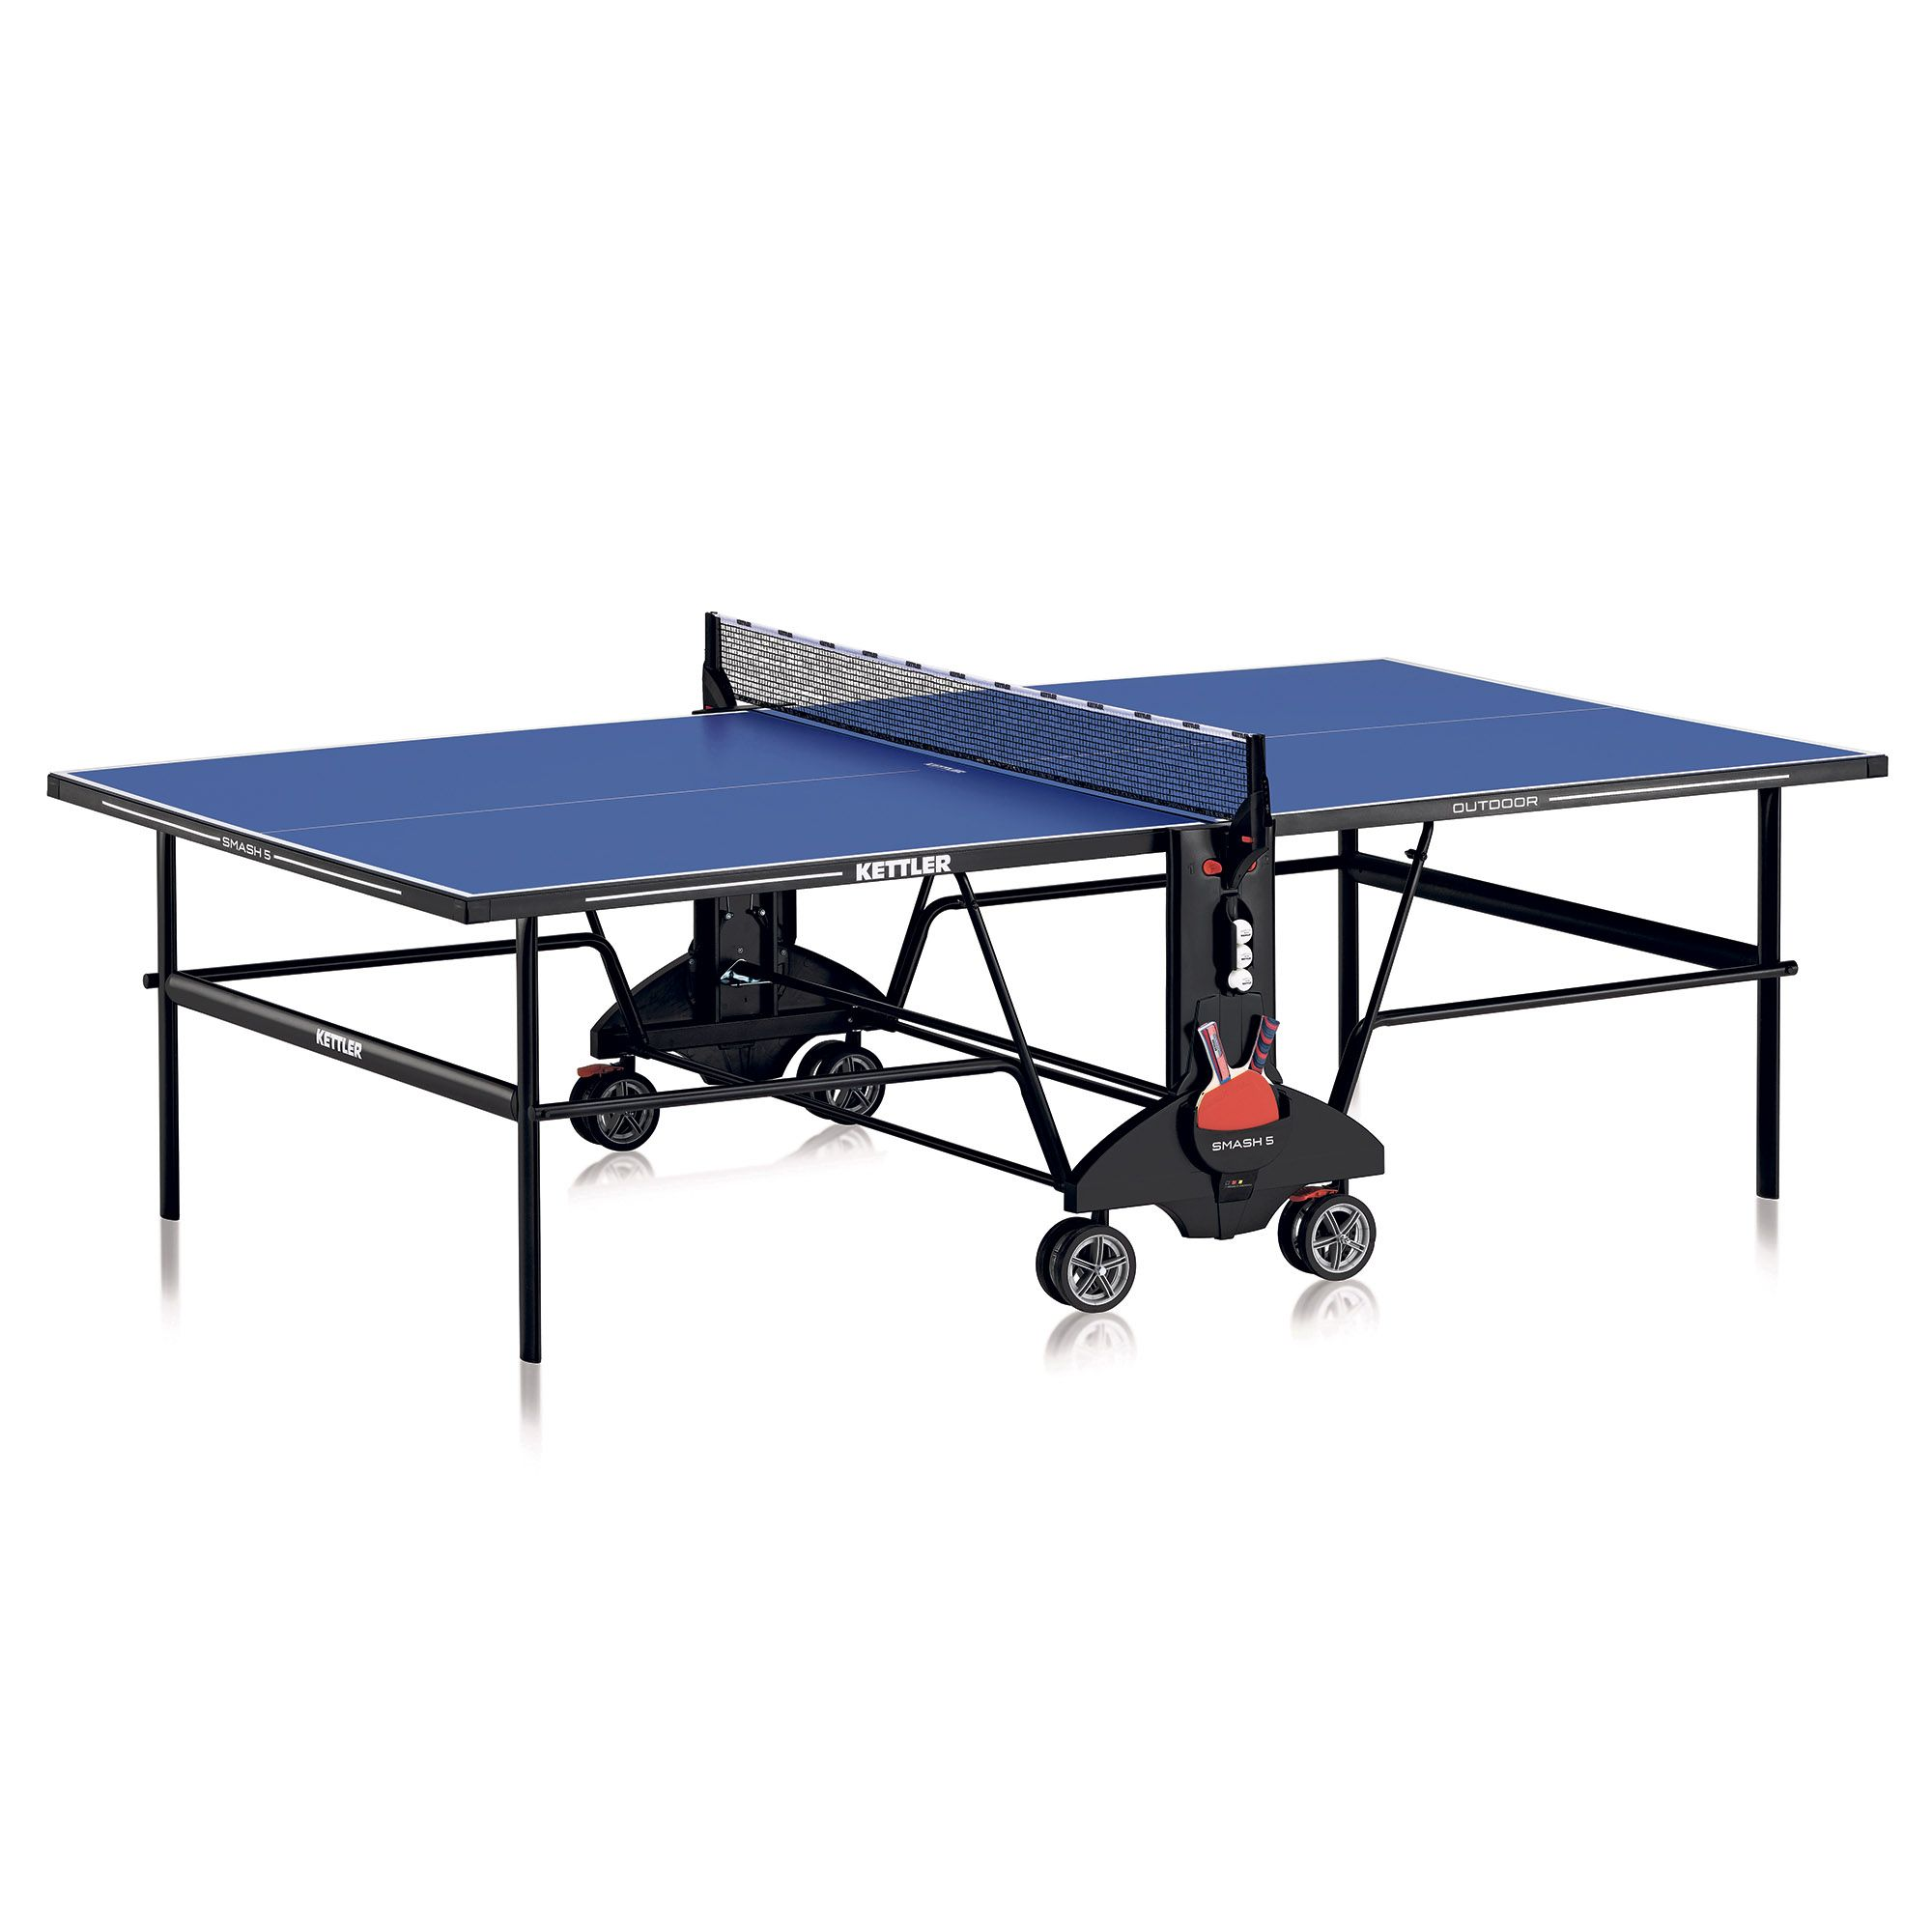 Kettler smash 5 0 outdoor table tennis table - Weatherproof table tennis table ...